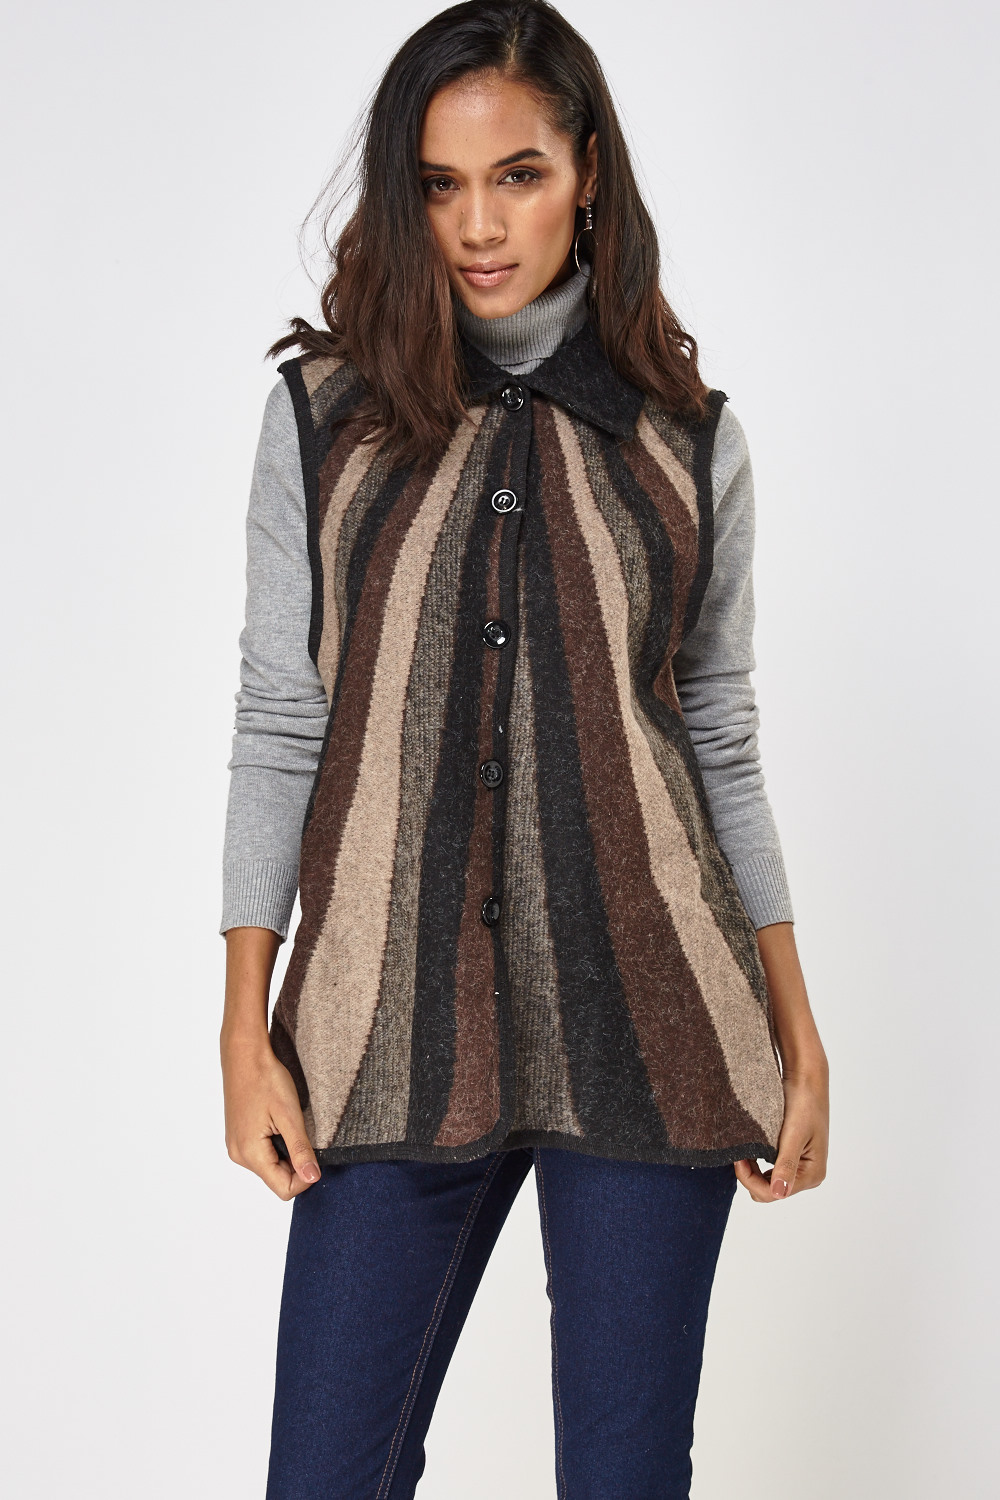 d26759874d28 Knitted Button Up Sleeveless Cardigan - Just £5